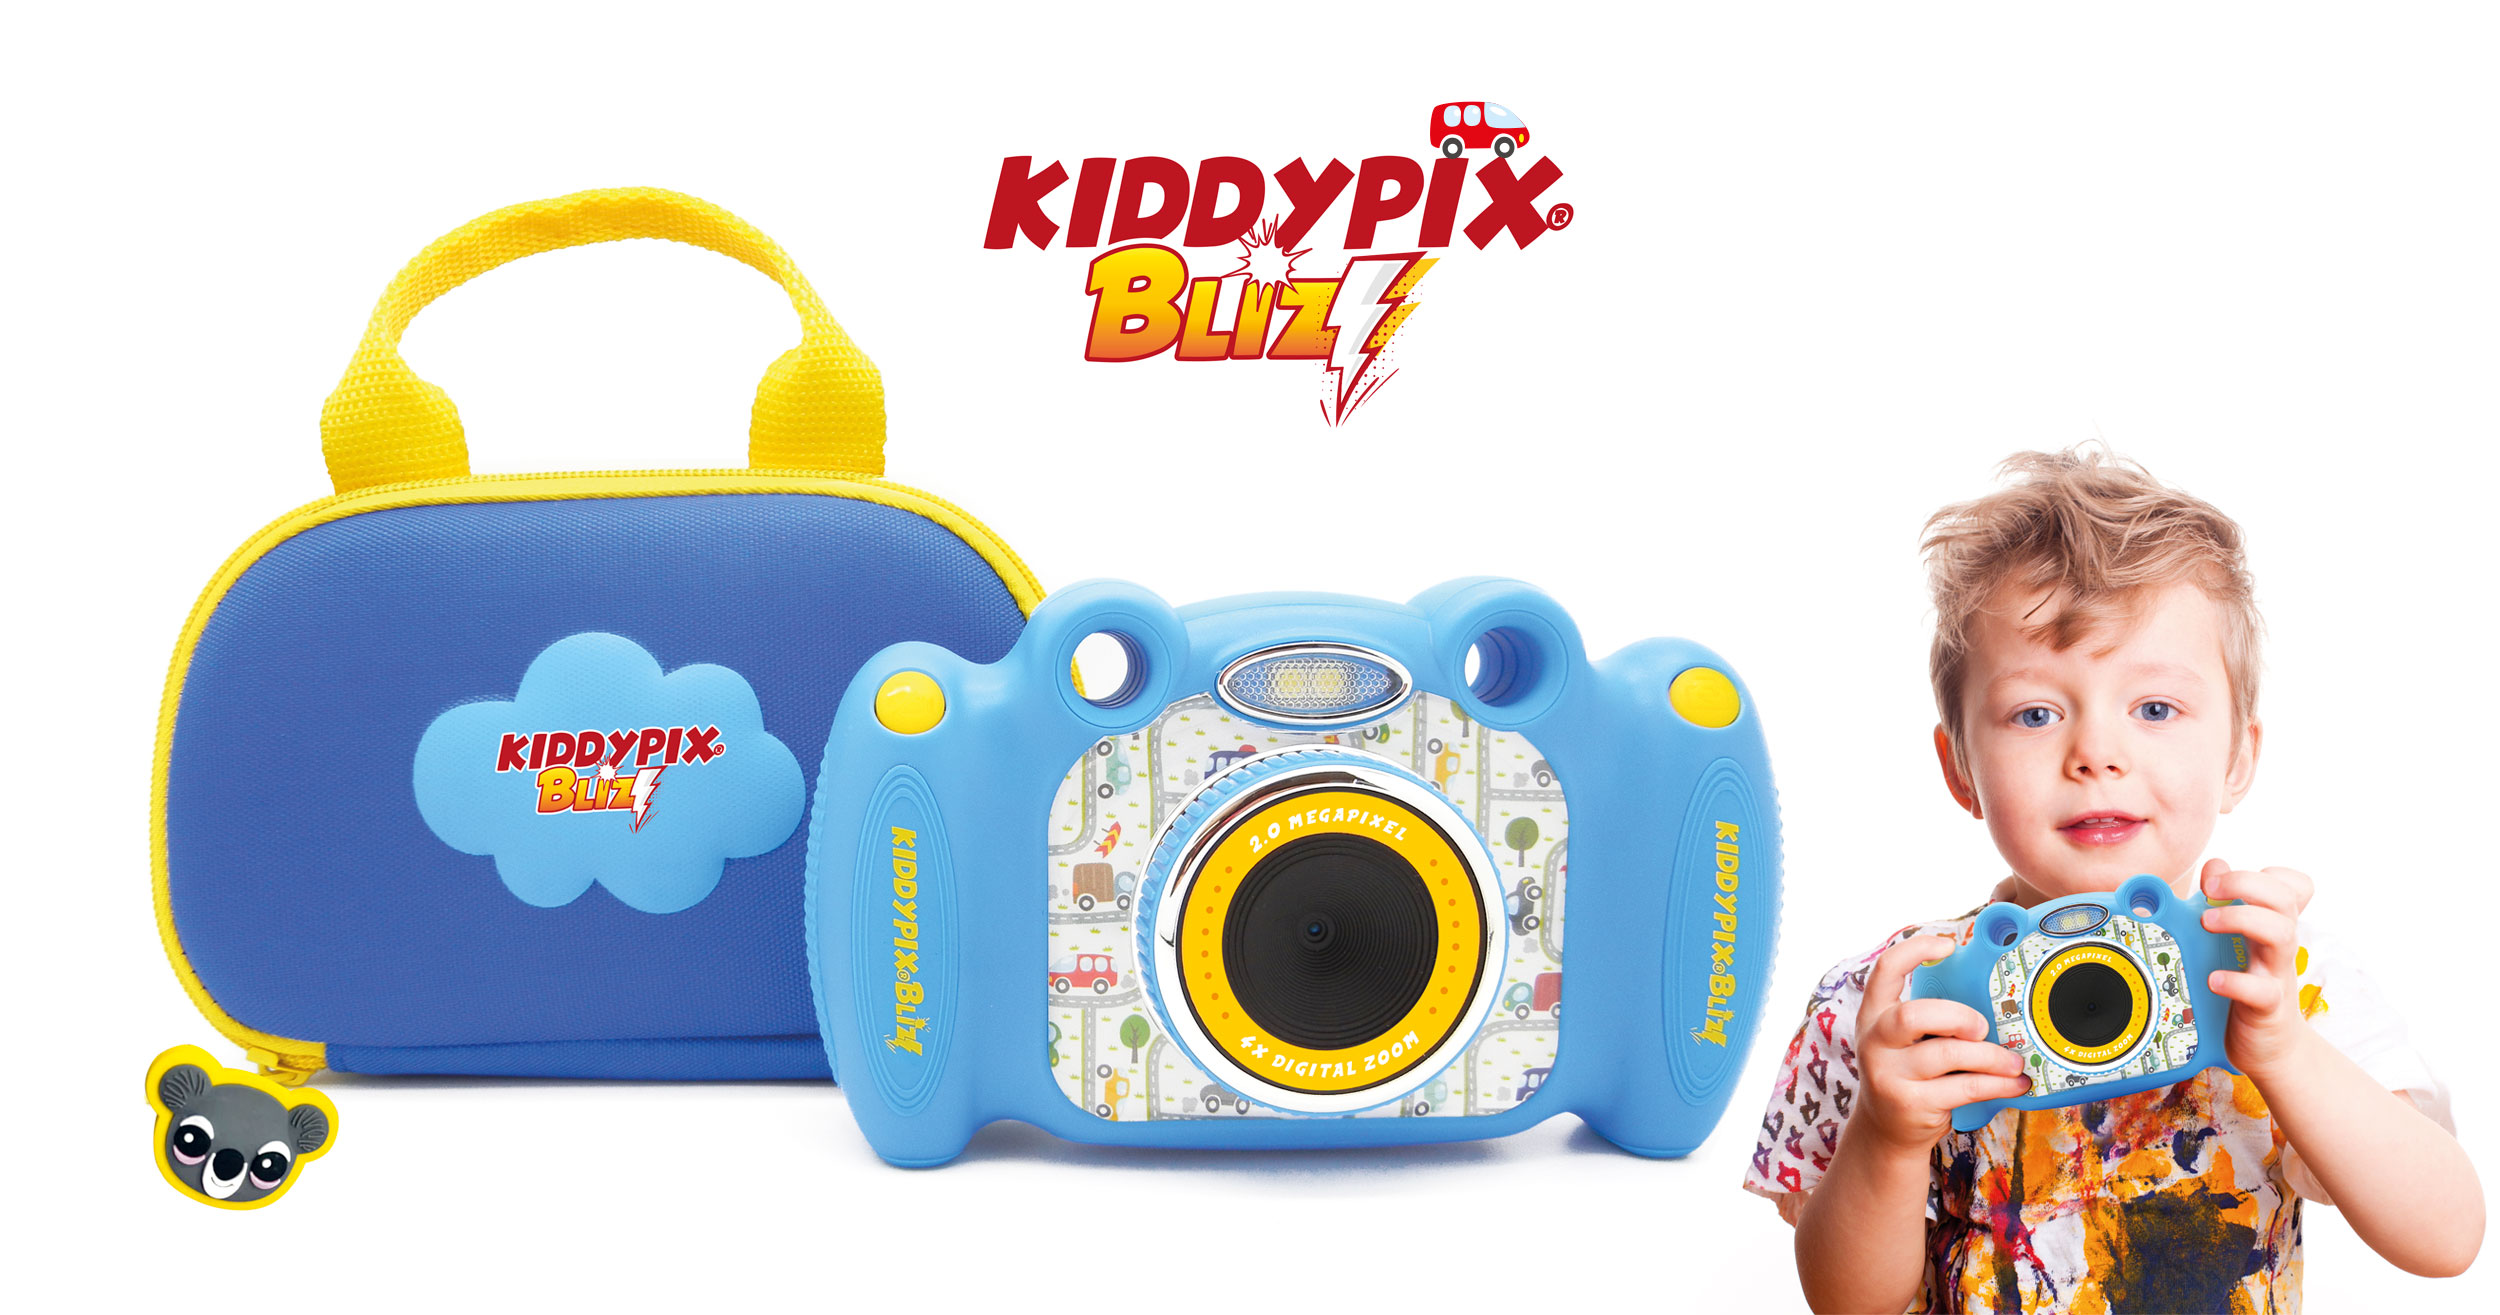 Kiddypix Blizz Blue